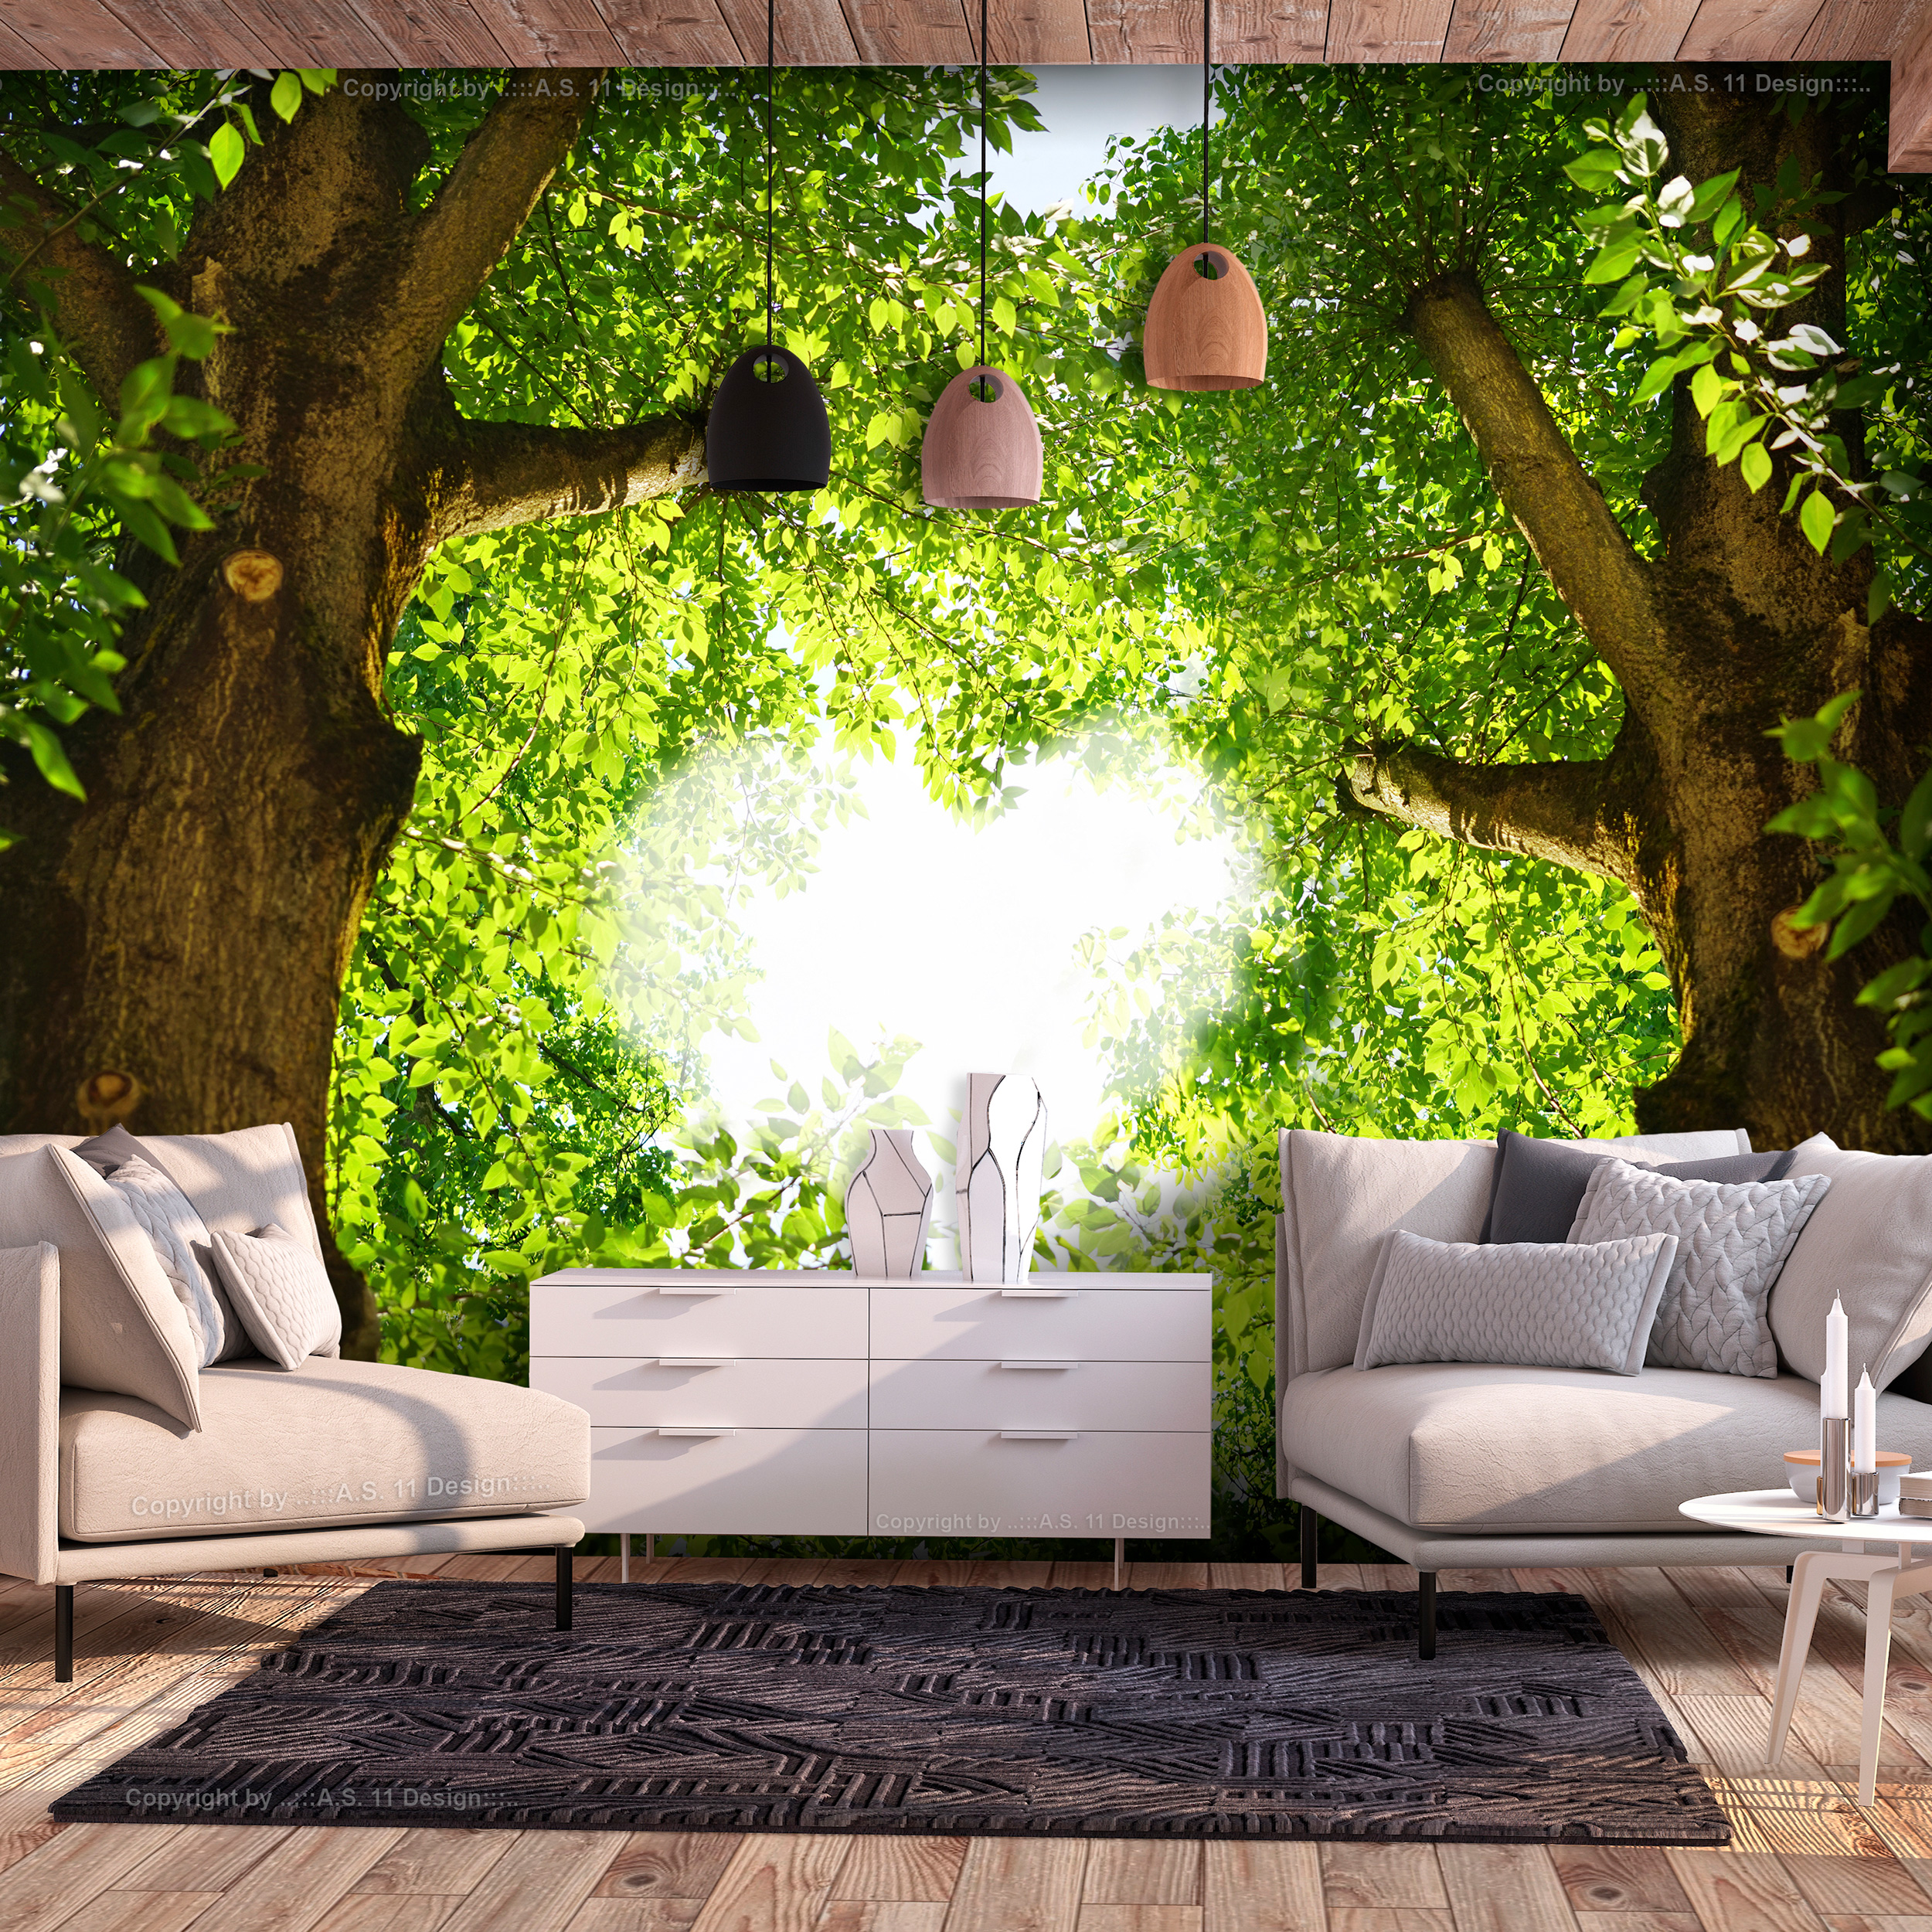 vlies fototapete wald liebe baum herz tapete natur tapeten wandbild xxl ebay. Black Bedroom Furniture Sets. Home Design Ideas